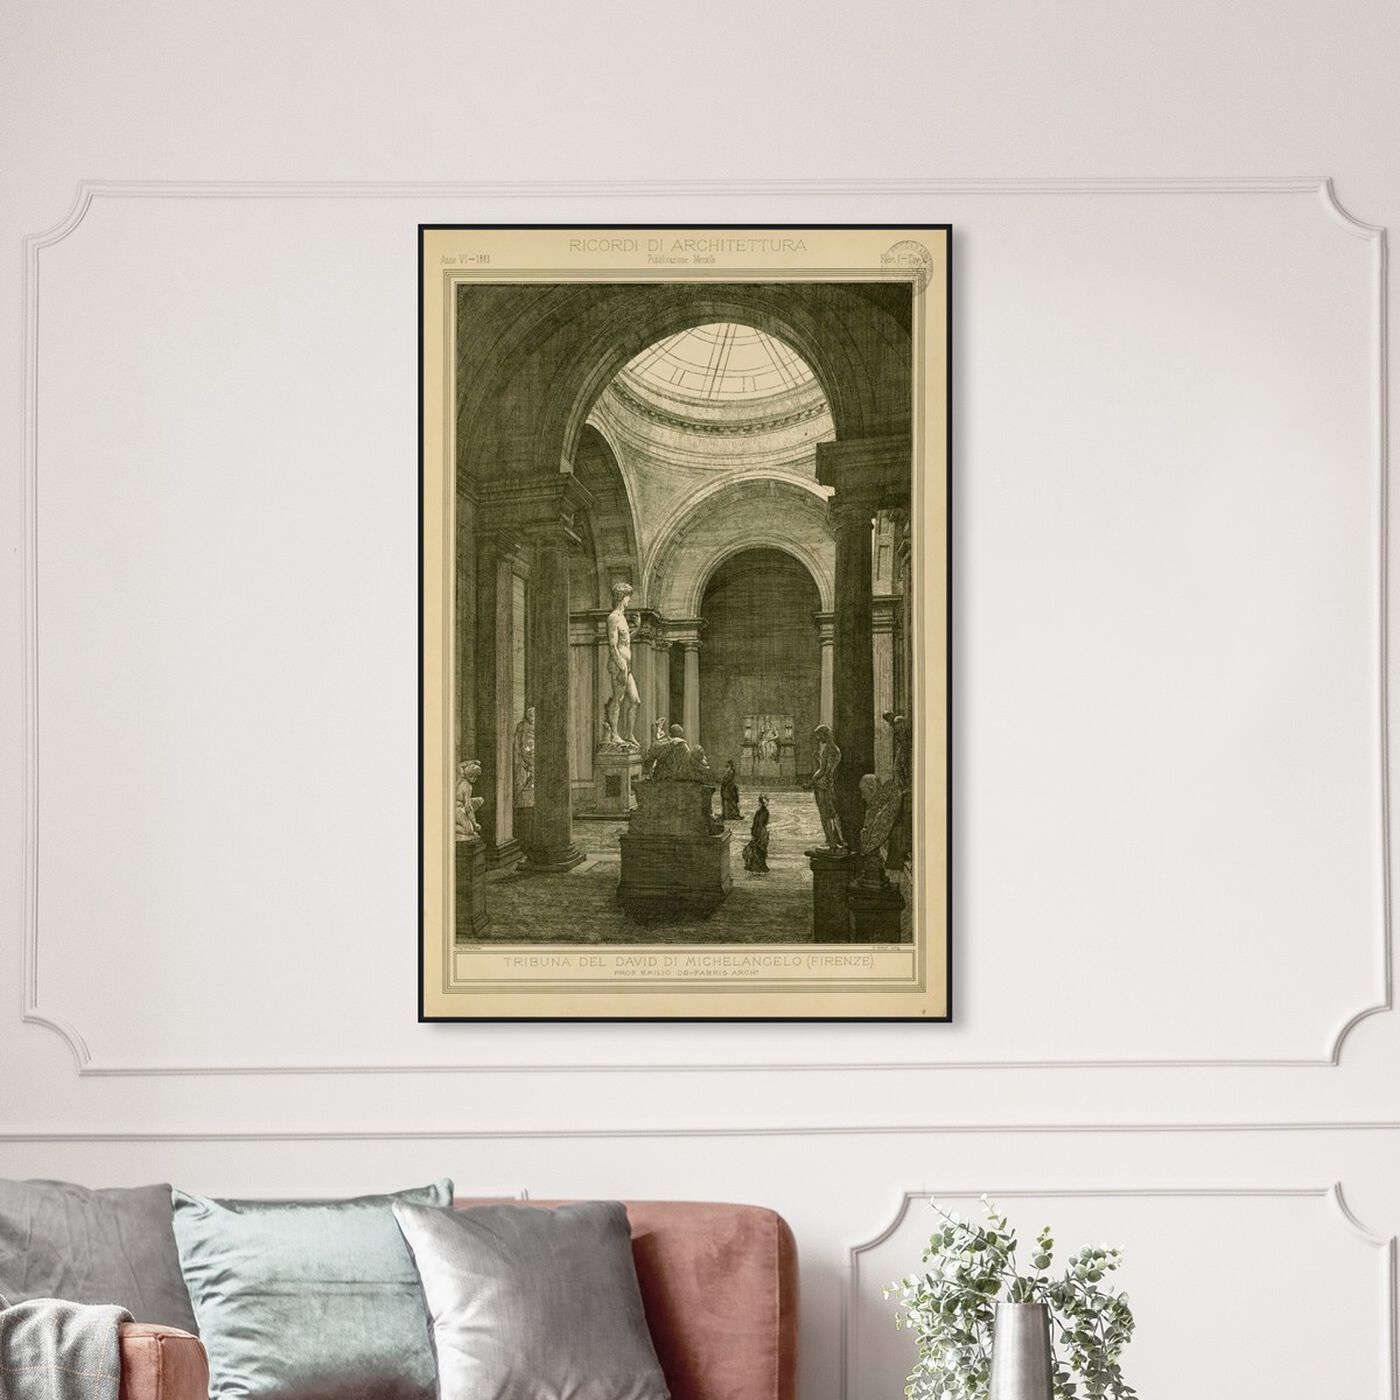 Hanging view of Tribuna del David di Michelancelo - The Art Cabinet featuring architecture and buildings and structures art.